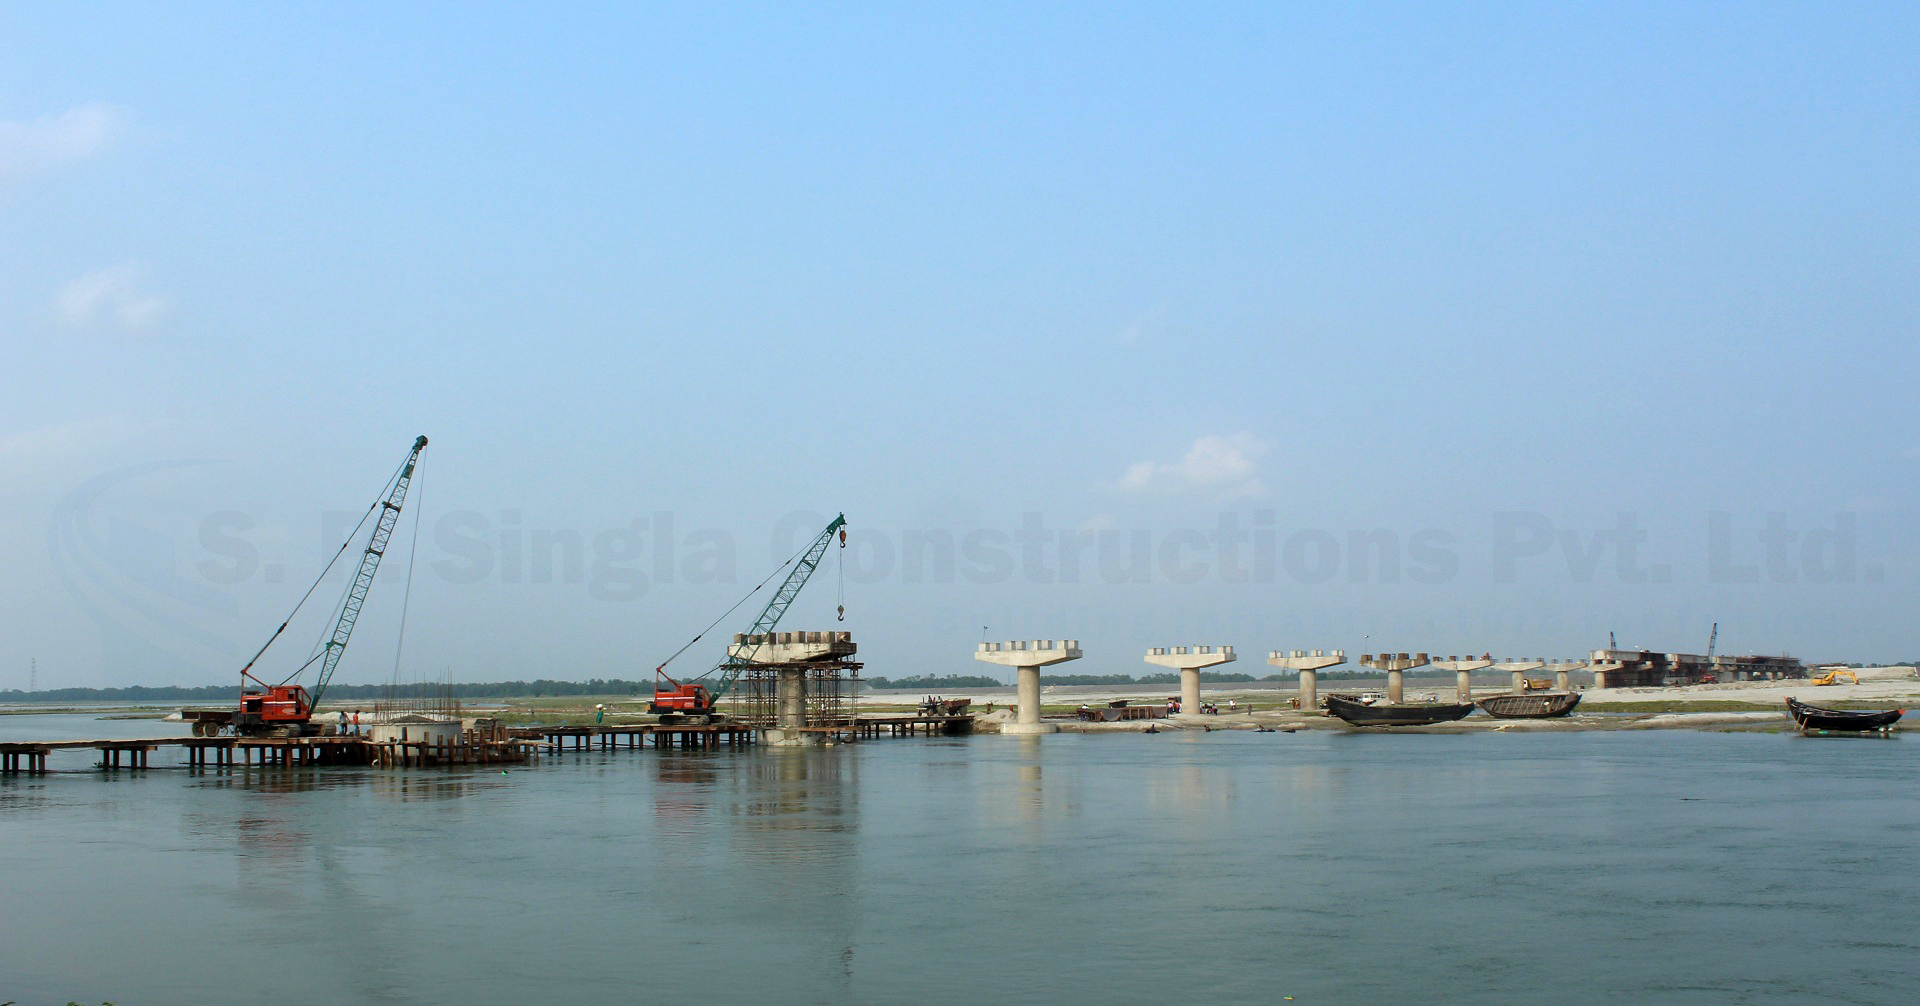 1.056 Km long Bridge project on river Fulahar at Nakatti Point in West Bengal.